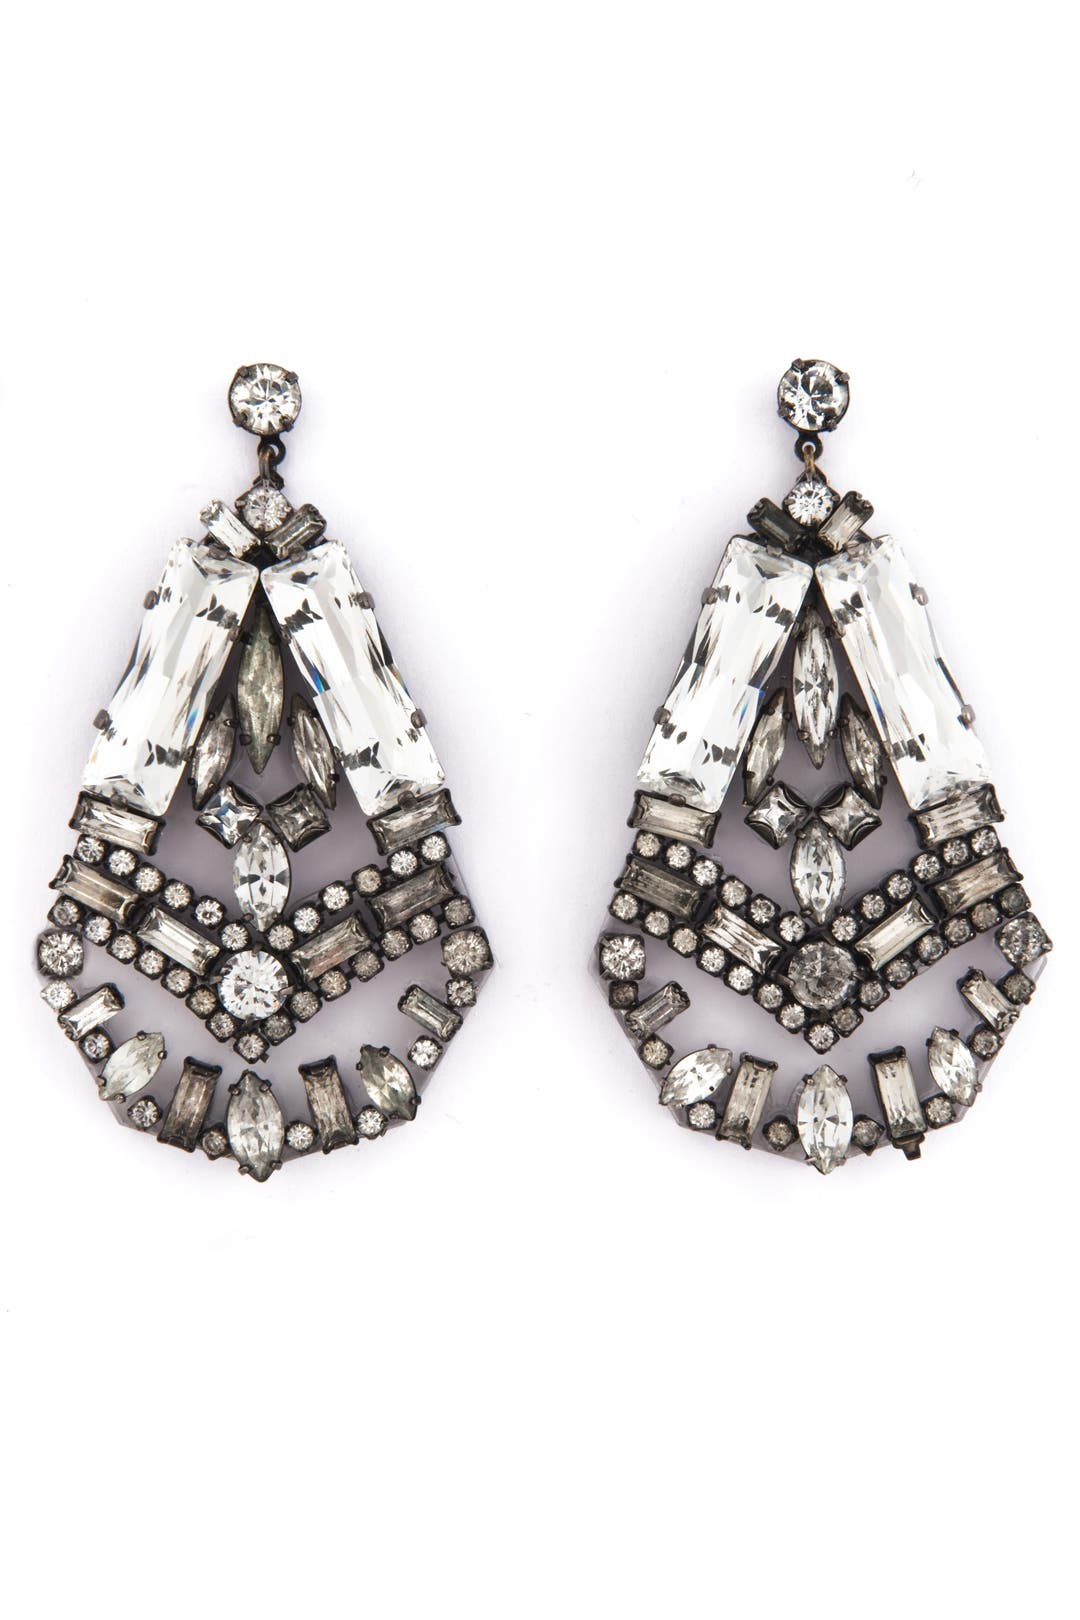 Heart of Glass Earrings by Erickson Beamon